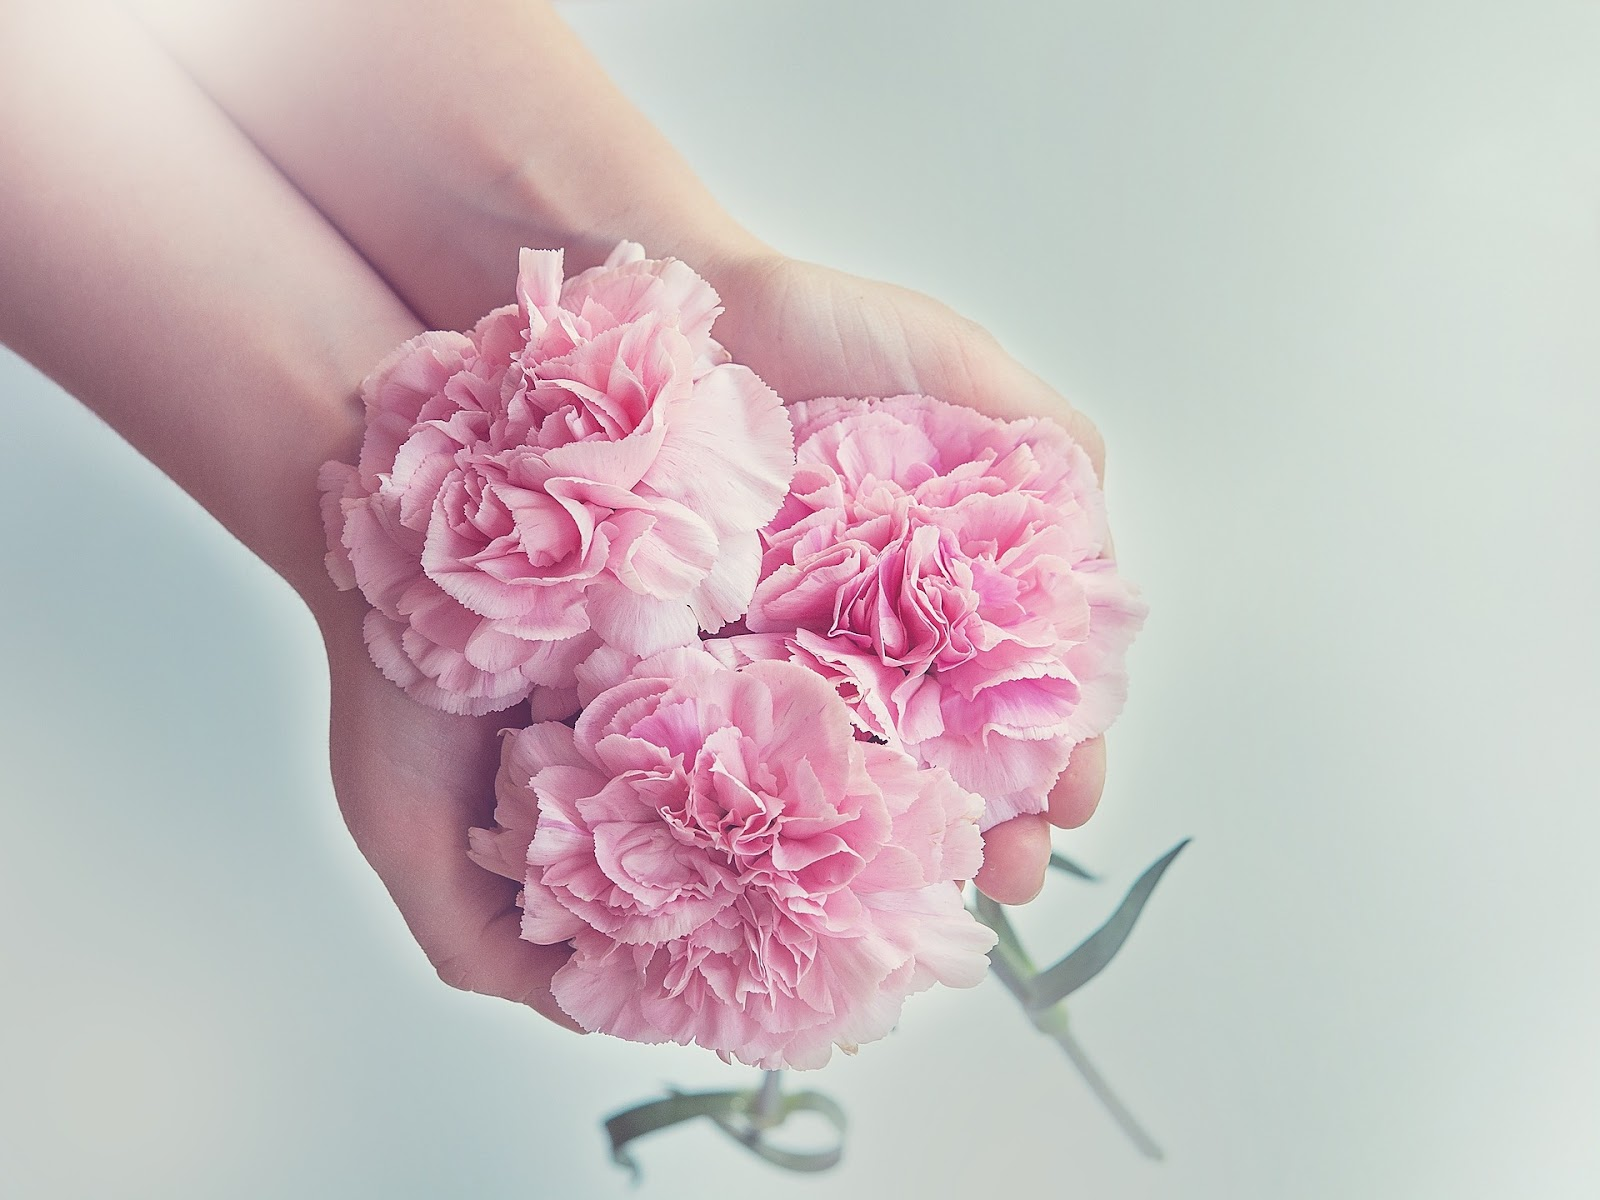 Pink carnations_for funeral.jpg